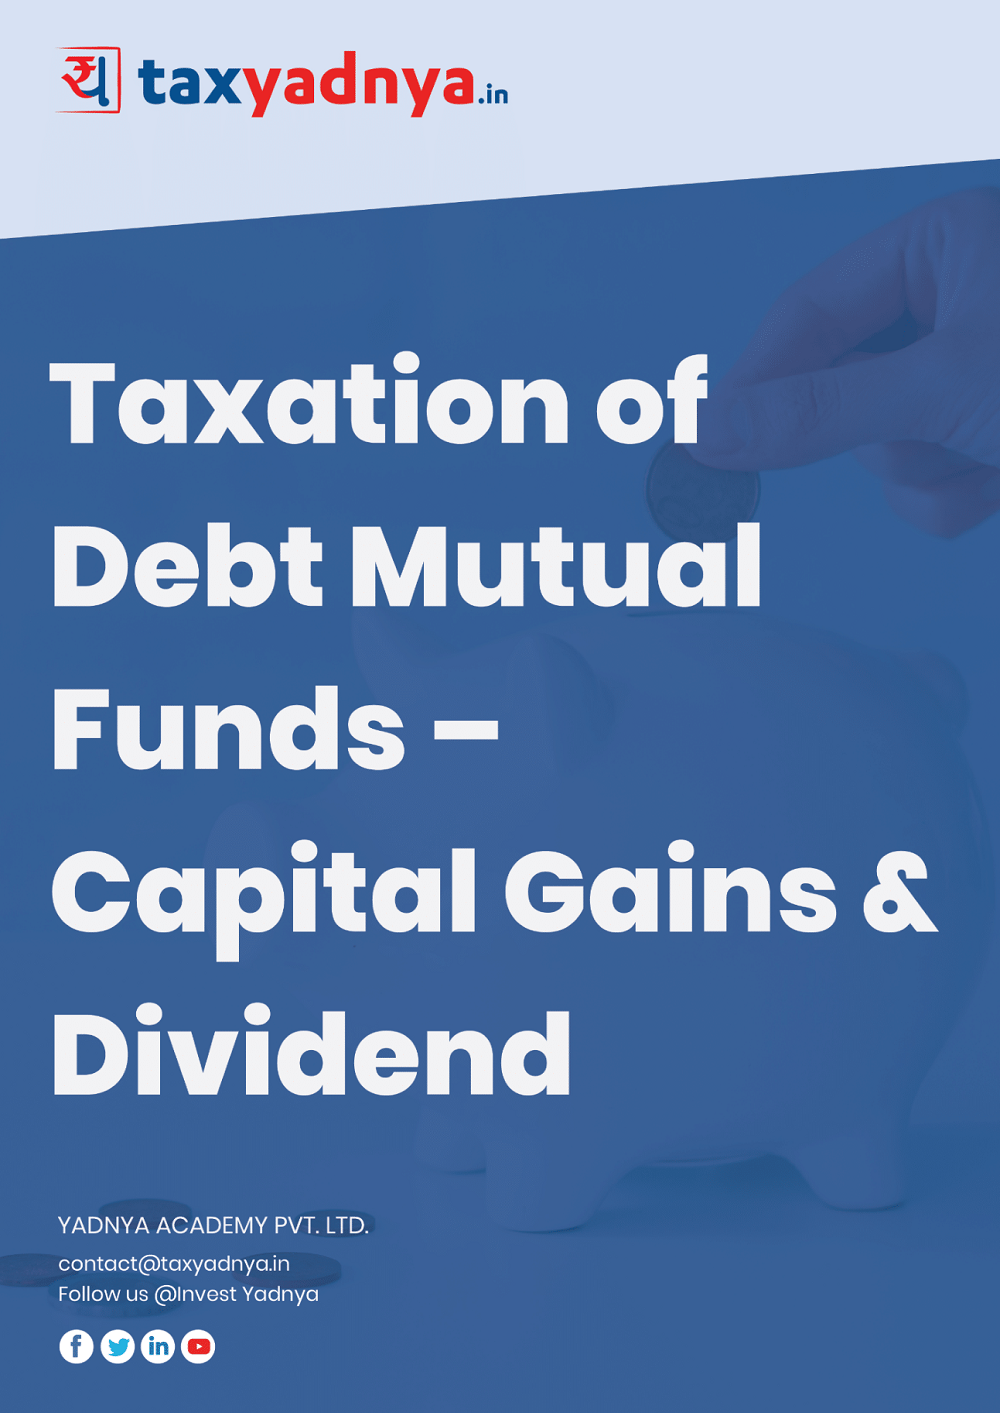 This eBook contains details about Capital Gain taxation of Debt Mutual Funds as well as Dividend Taxation on Debt Mutual Funds. Concept is explained with more than 10 different EXAMPLES on various scenarios. eBook also talks about how the Capital Gain works if the investor is below Basic Exemption limit of Income Tax in detail. All the numbers & rules are based on 2018-19 and 2019-20 Financial Year taxation.